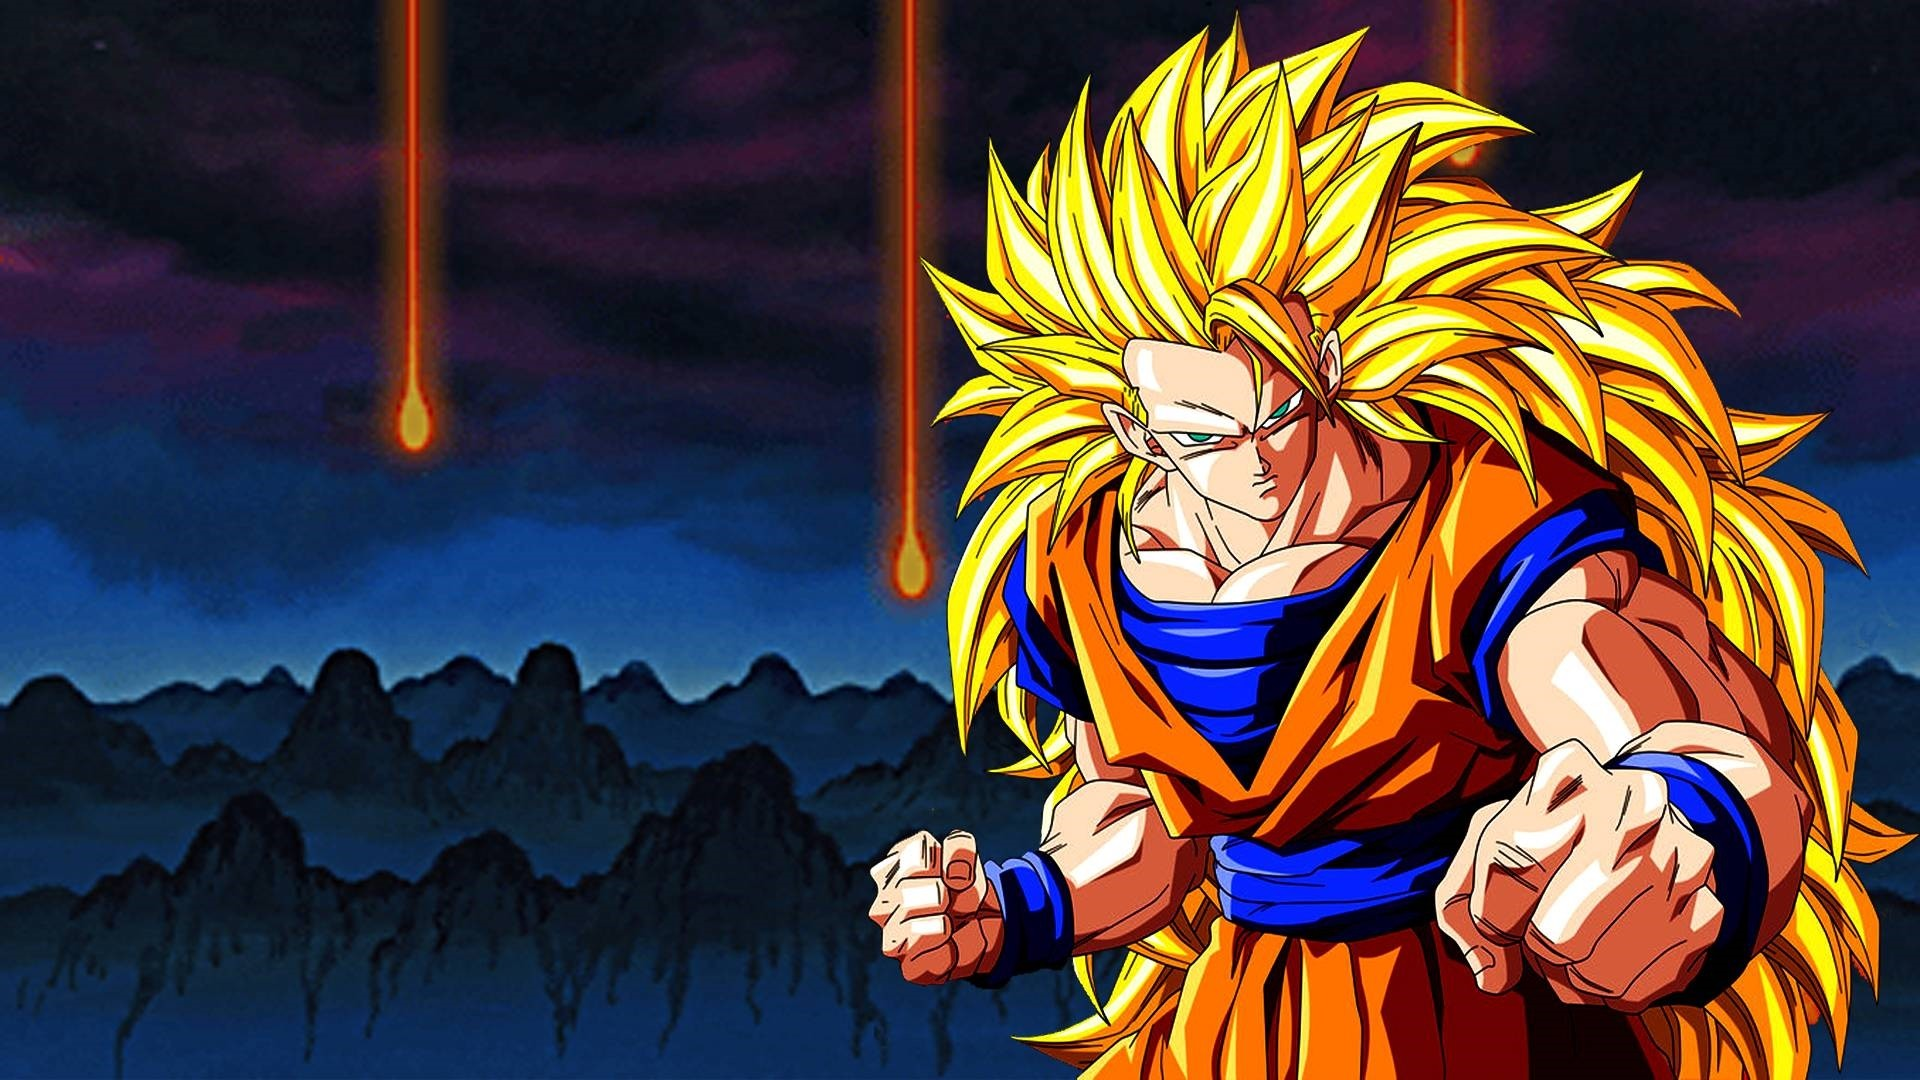 Dbz Live Wallpaper Dragon Ball Z Wallpaper Live Wallpaper Free K22 .